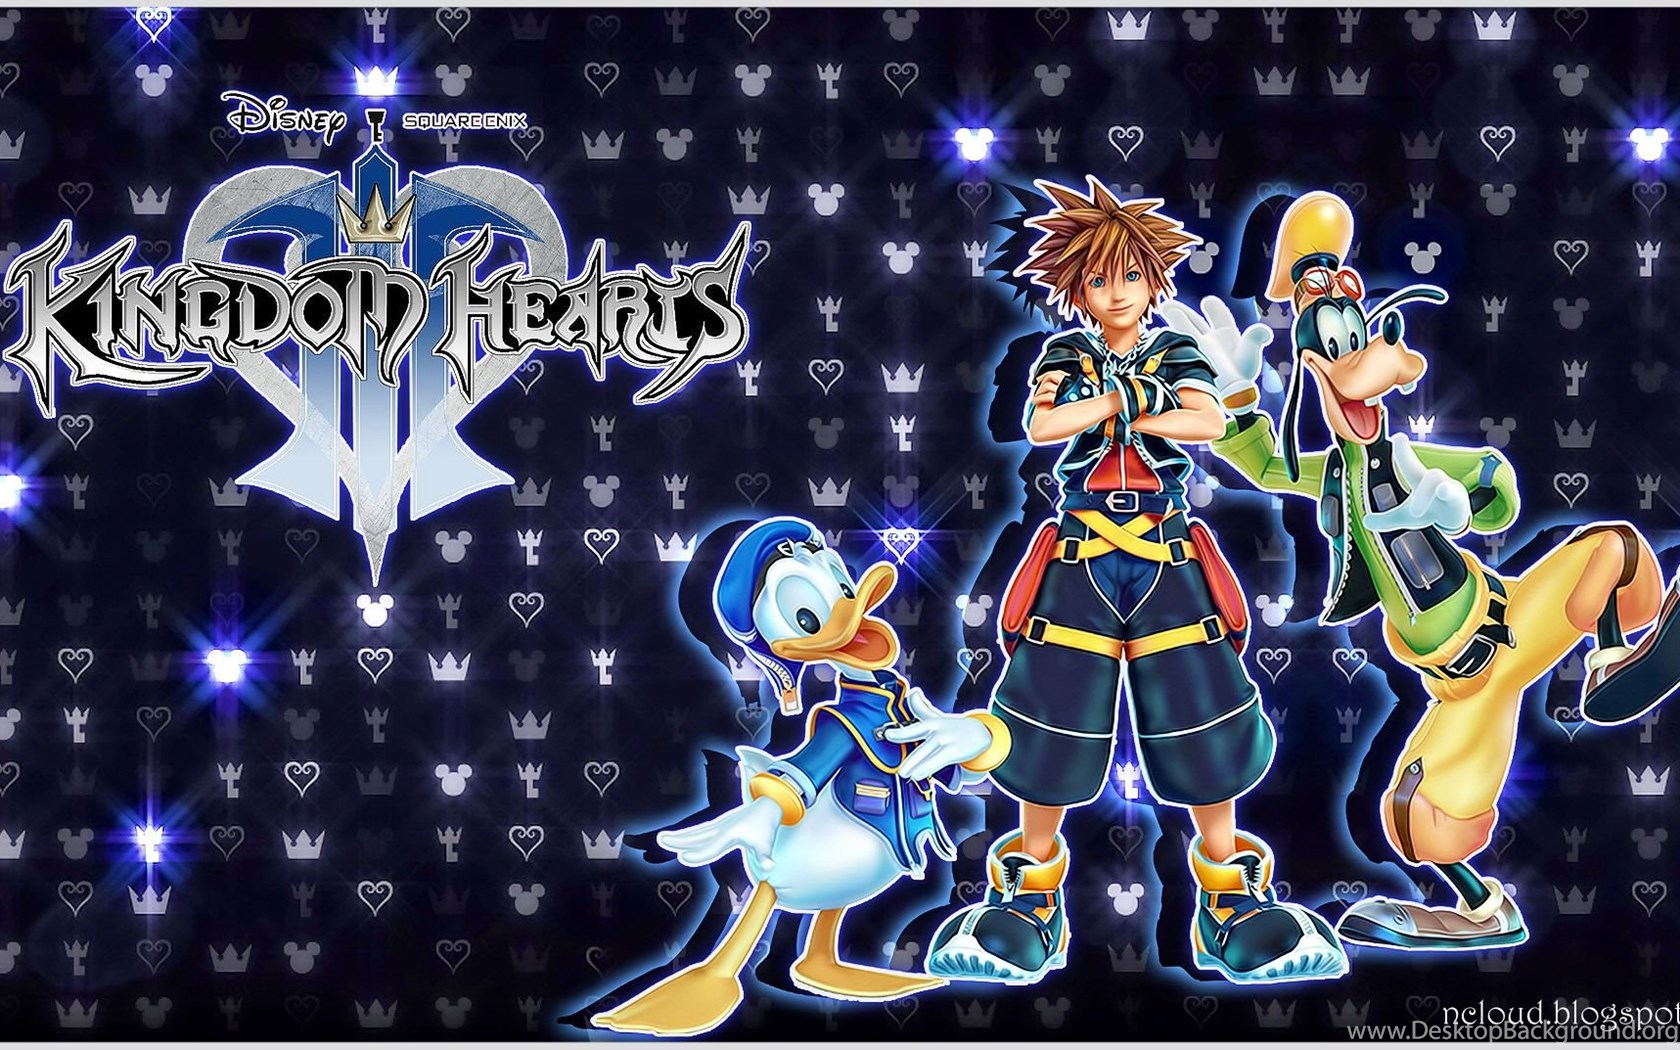 Games Movies Music Anime: My Kingdom Hearts 3 Wallpapers 2 Desktop ...